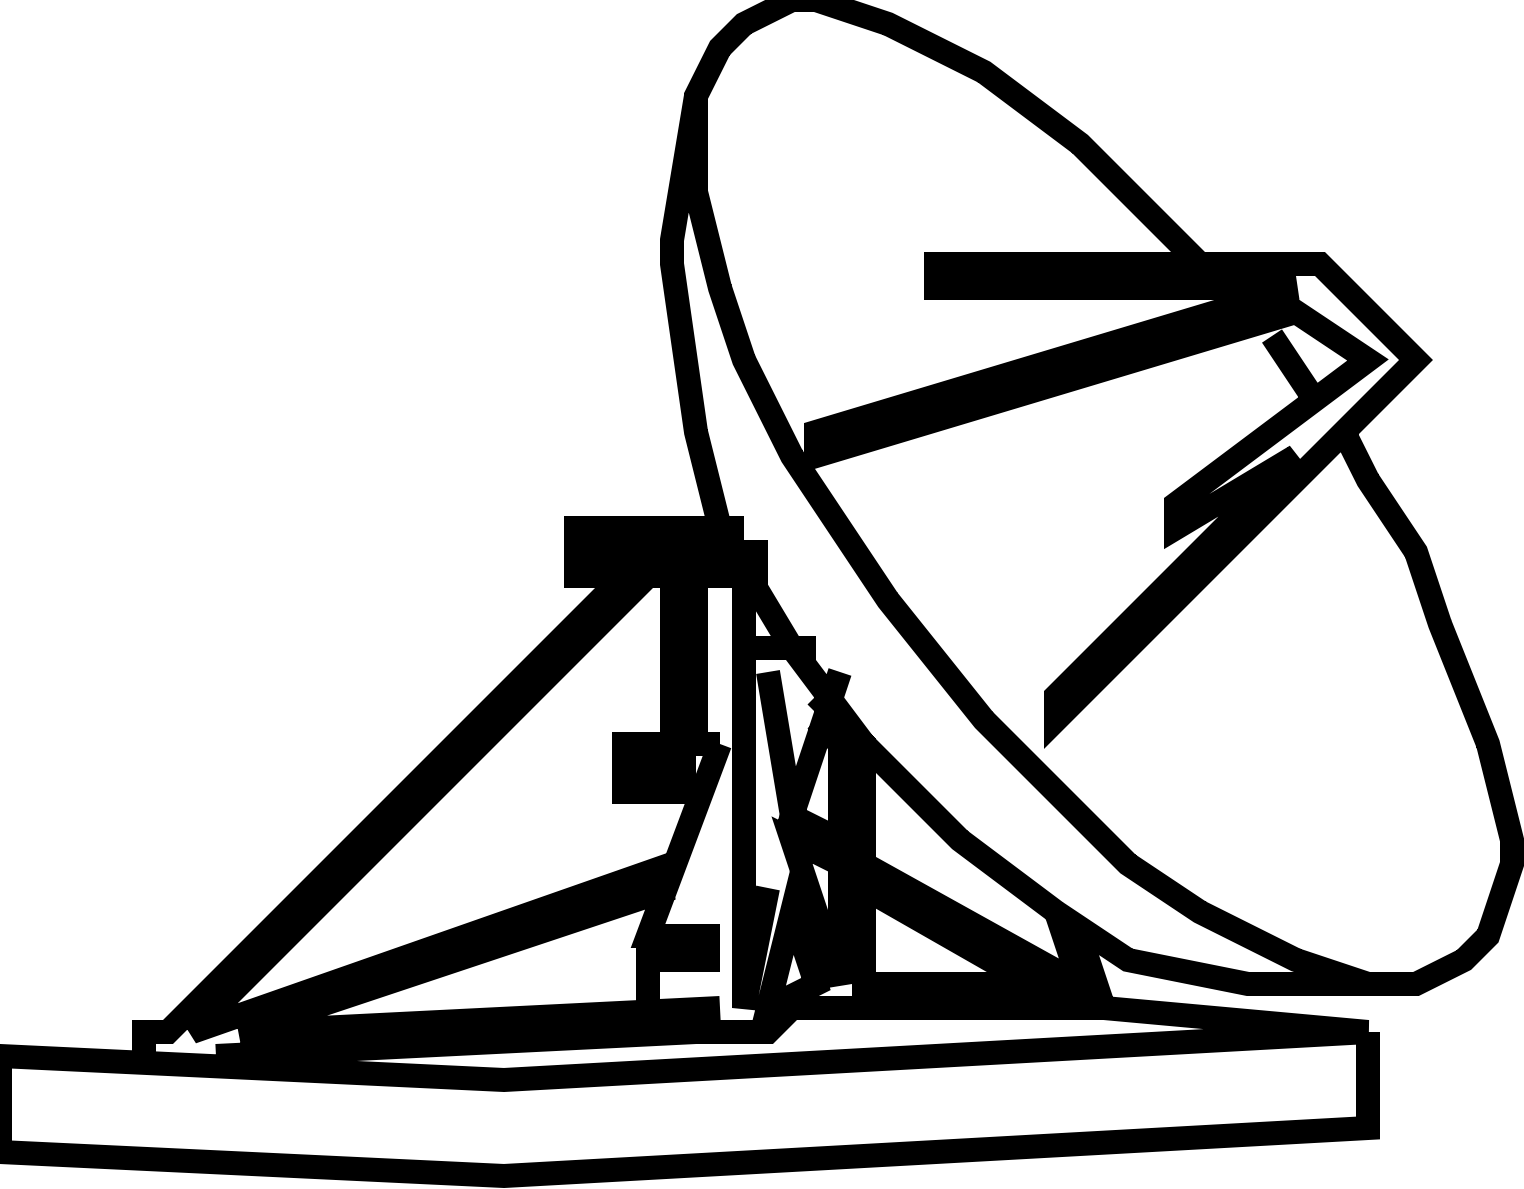 Ground Station Clipart 20 Free Cliparts